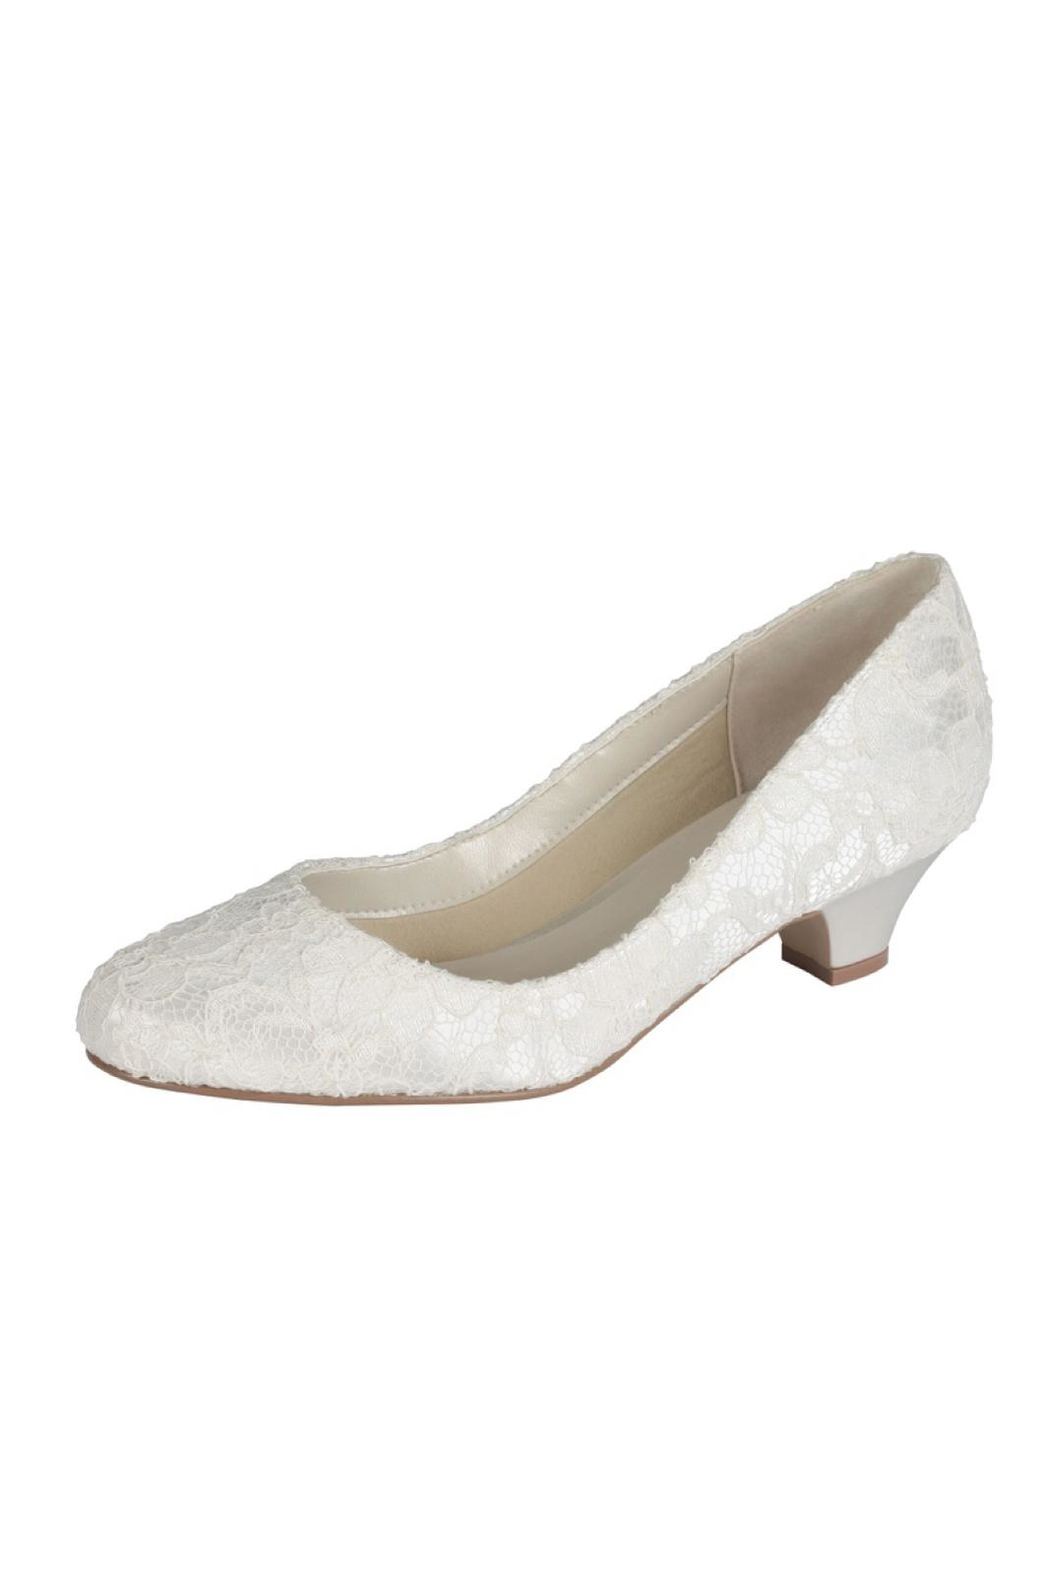 pink paradox London Bonbon Ivory Lace Shoes - Front Cropped Image